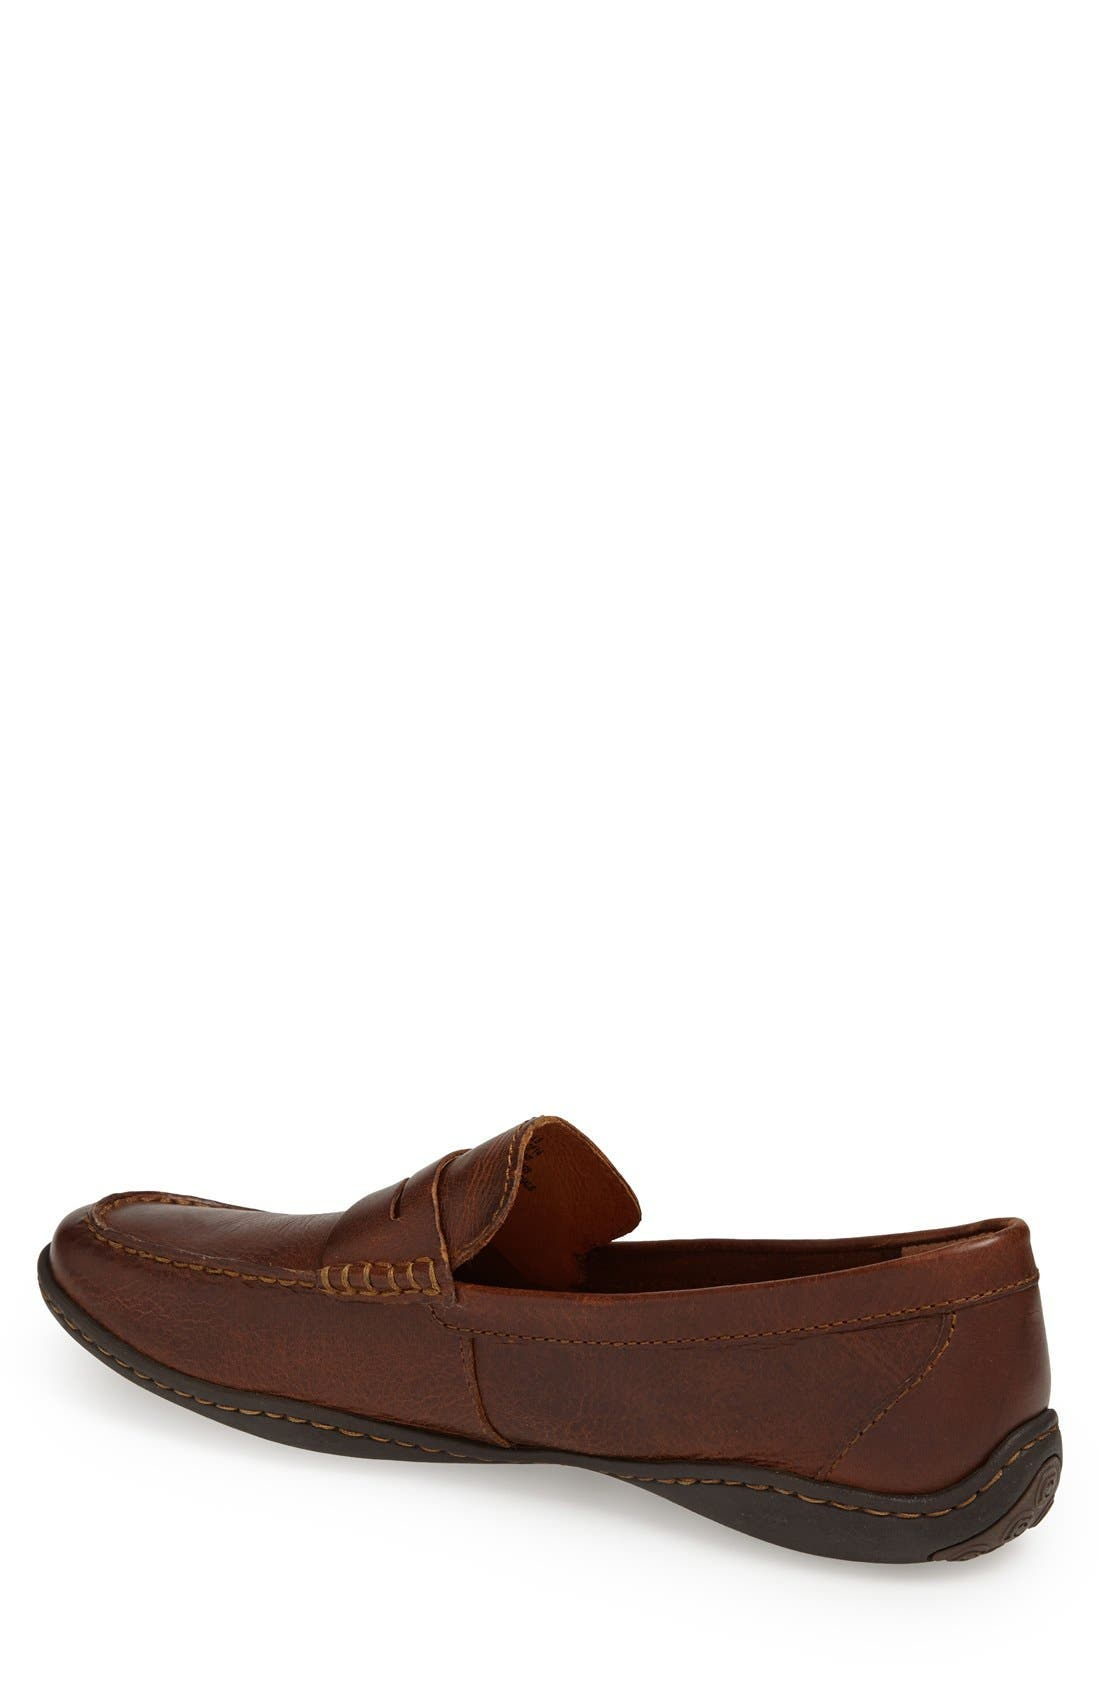 'Simon' Penny Loafer,                             Alternate thumbnail 3, color,                             CYMBAL